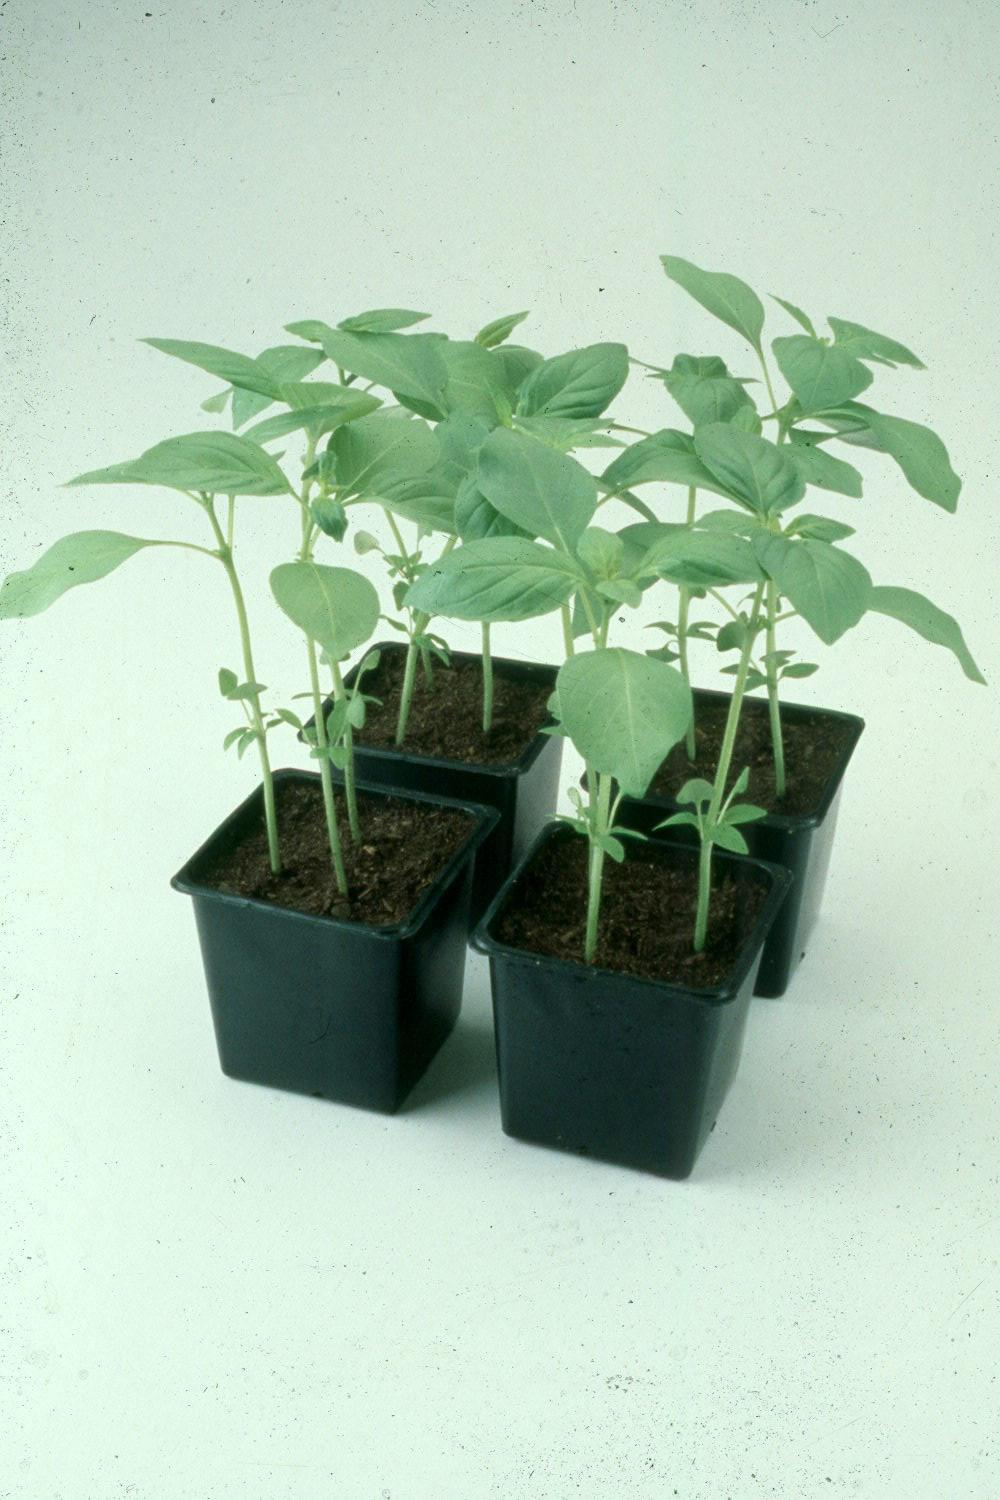 By transplanting certain plants such as this basil, gardens can harvest a crop much sooner than by growing plants from seed.